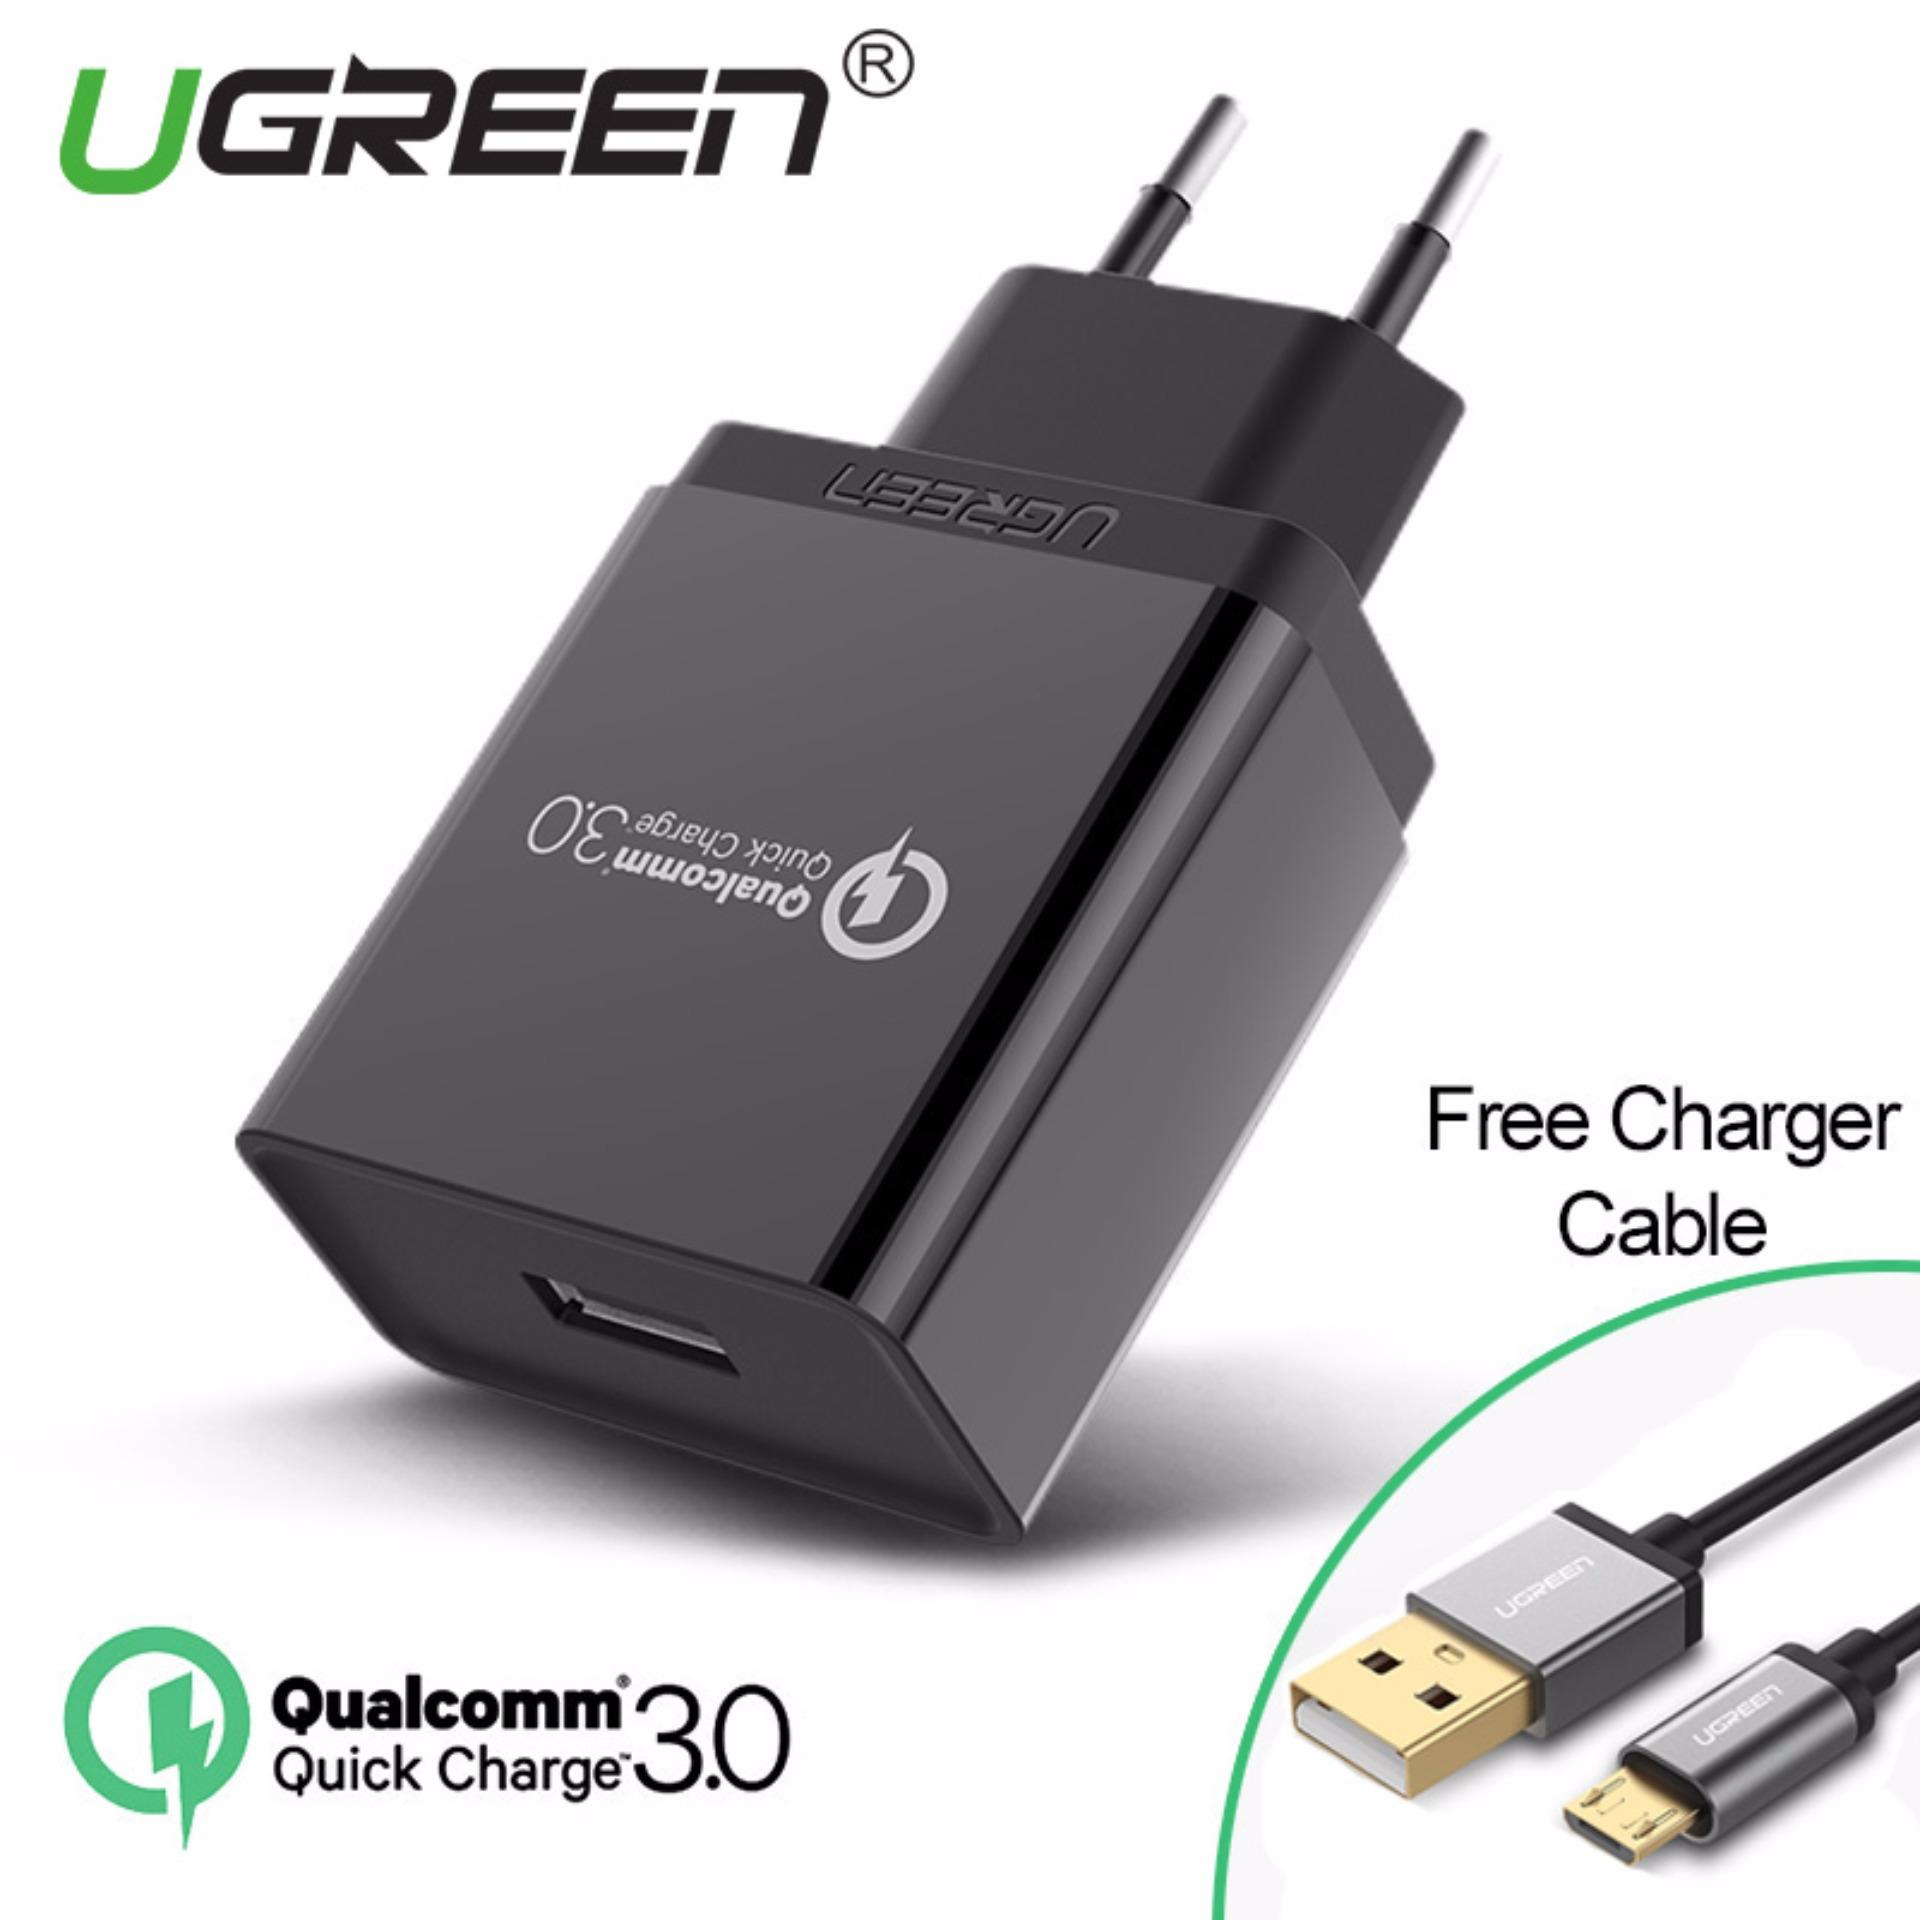 Harga Ugreen 1Meter Quick Charger For Xiaomi Redmi Samsung Handphone Hp Usb 3 Charger 18W Fast Mobile Phone Charger Black Free 1 Meter Micro Usb Cable Ugreen Ori